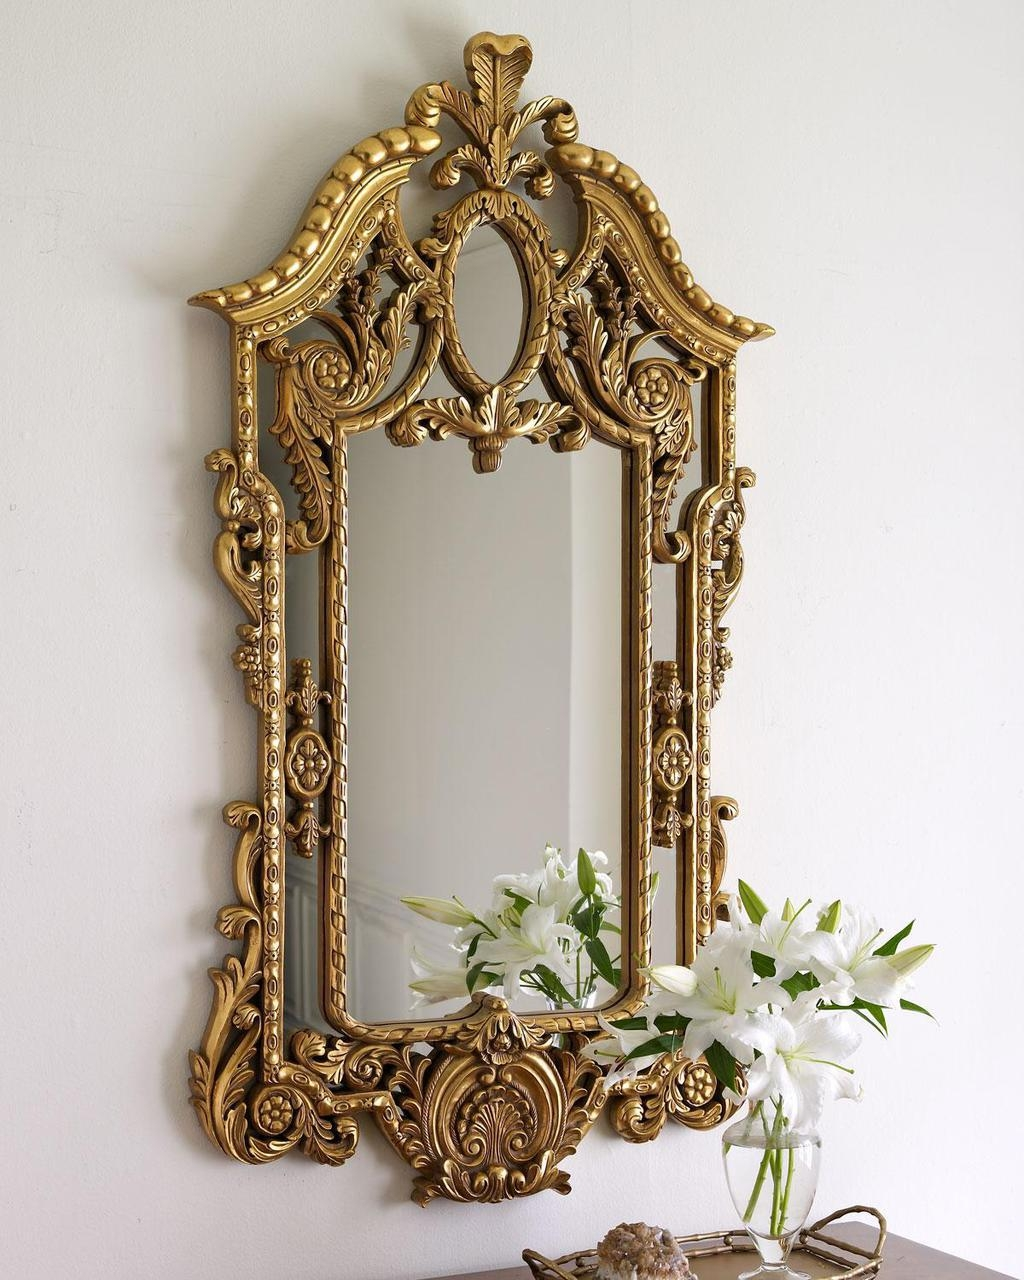 Queen Mirror Frame With Golden Framework Pretty And Expensive Within Expensive Mirrors (Image 14 of 15)